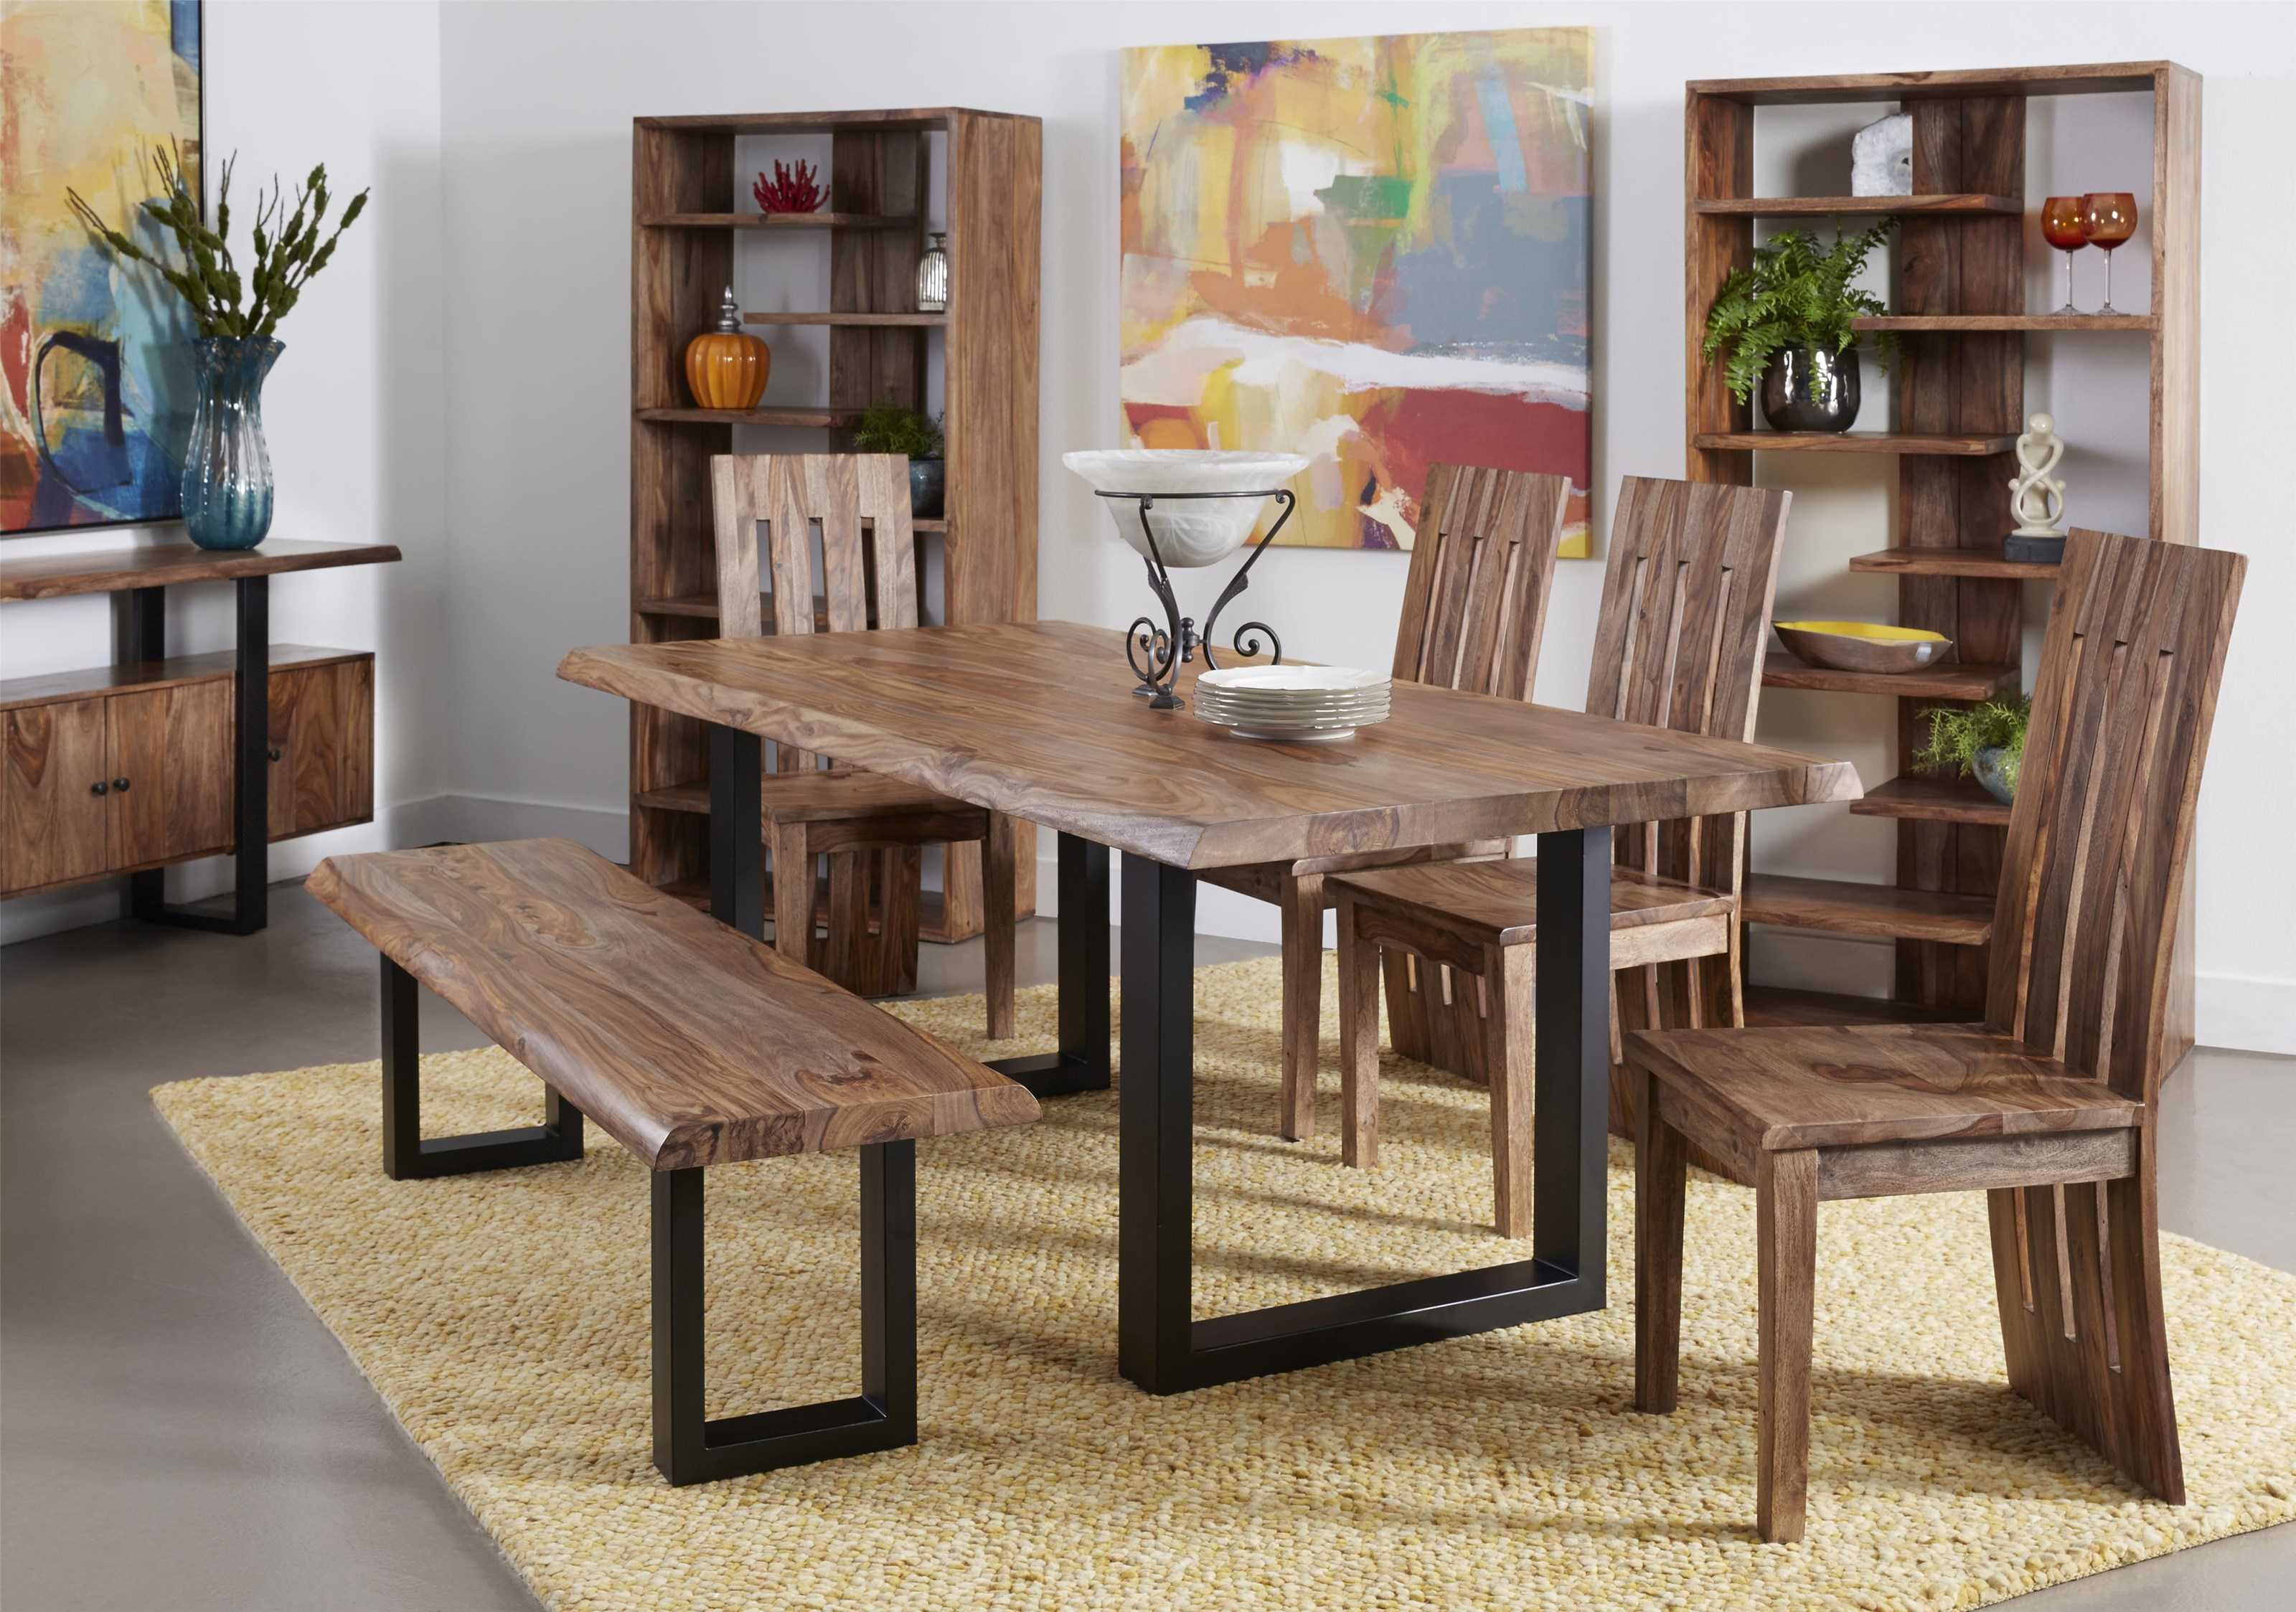 Gilliam 6 Piece Dining Set by C2C at Walker's Furniture